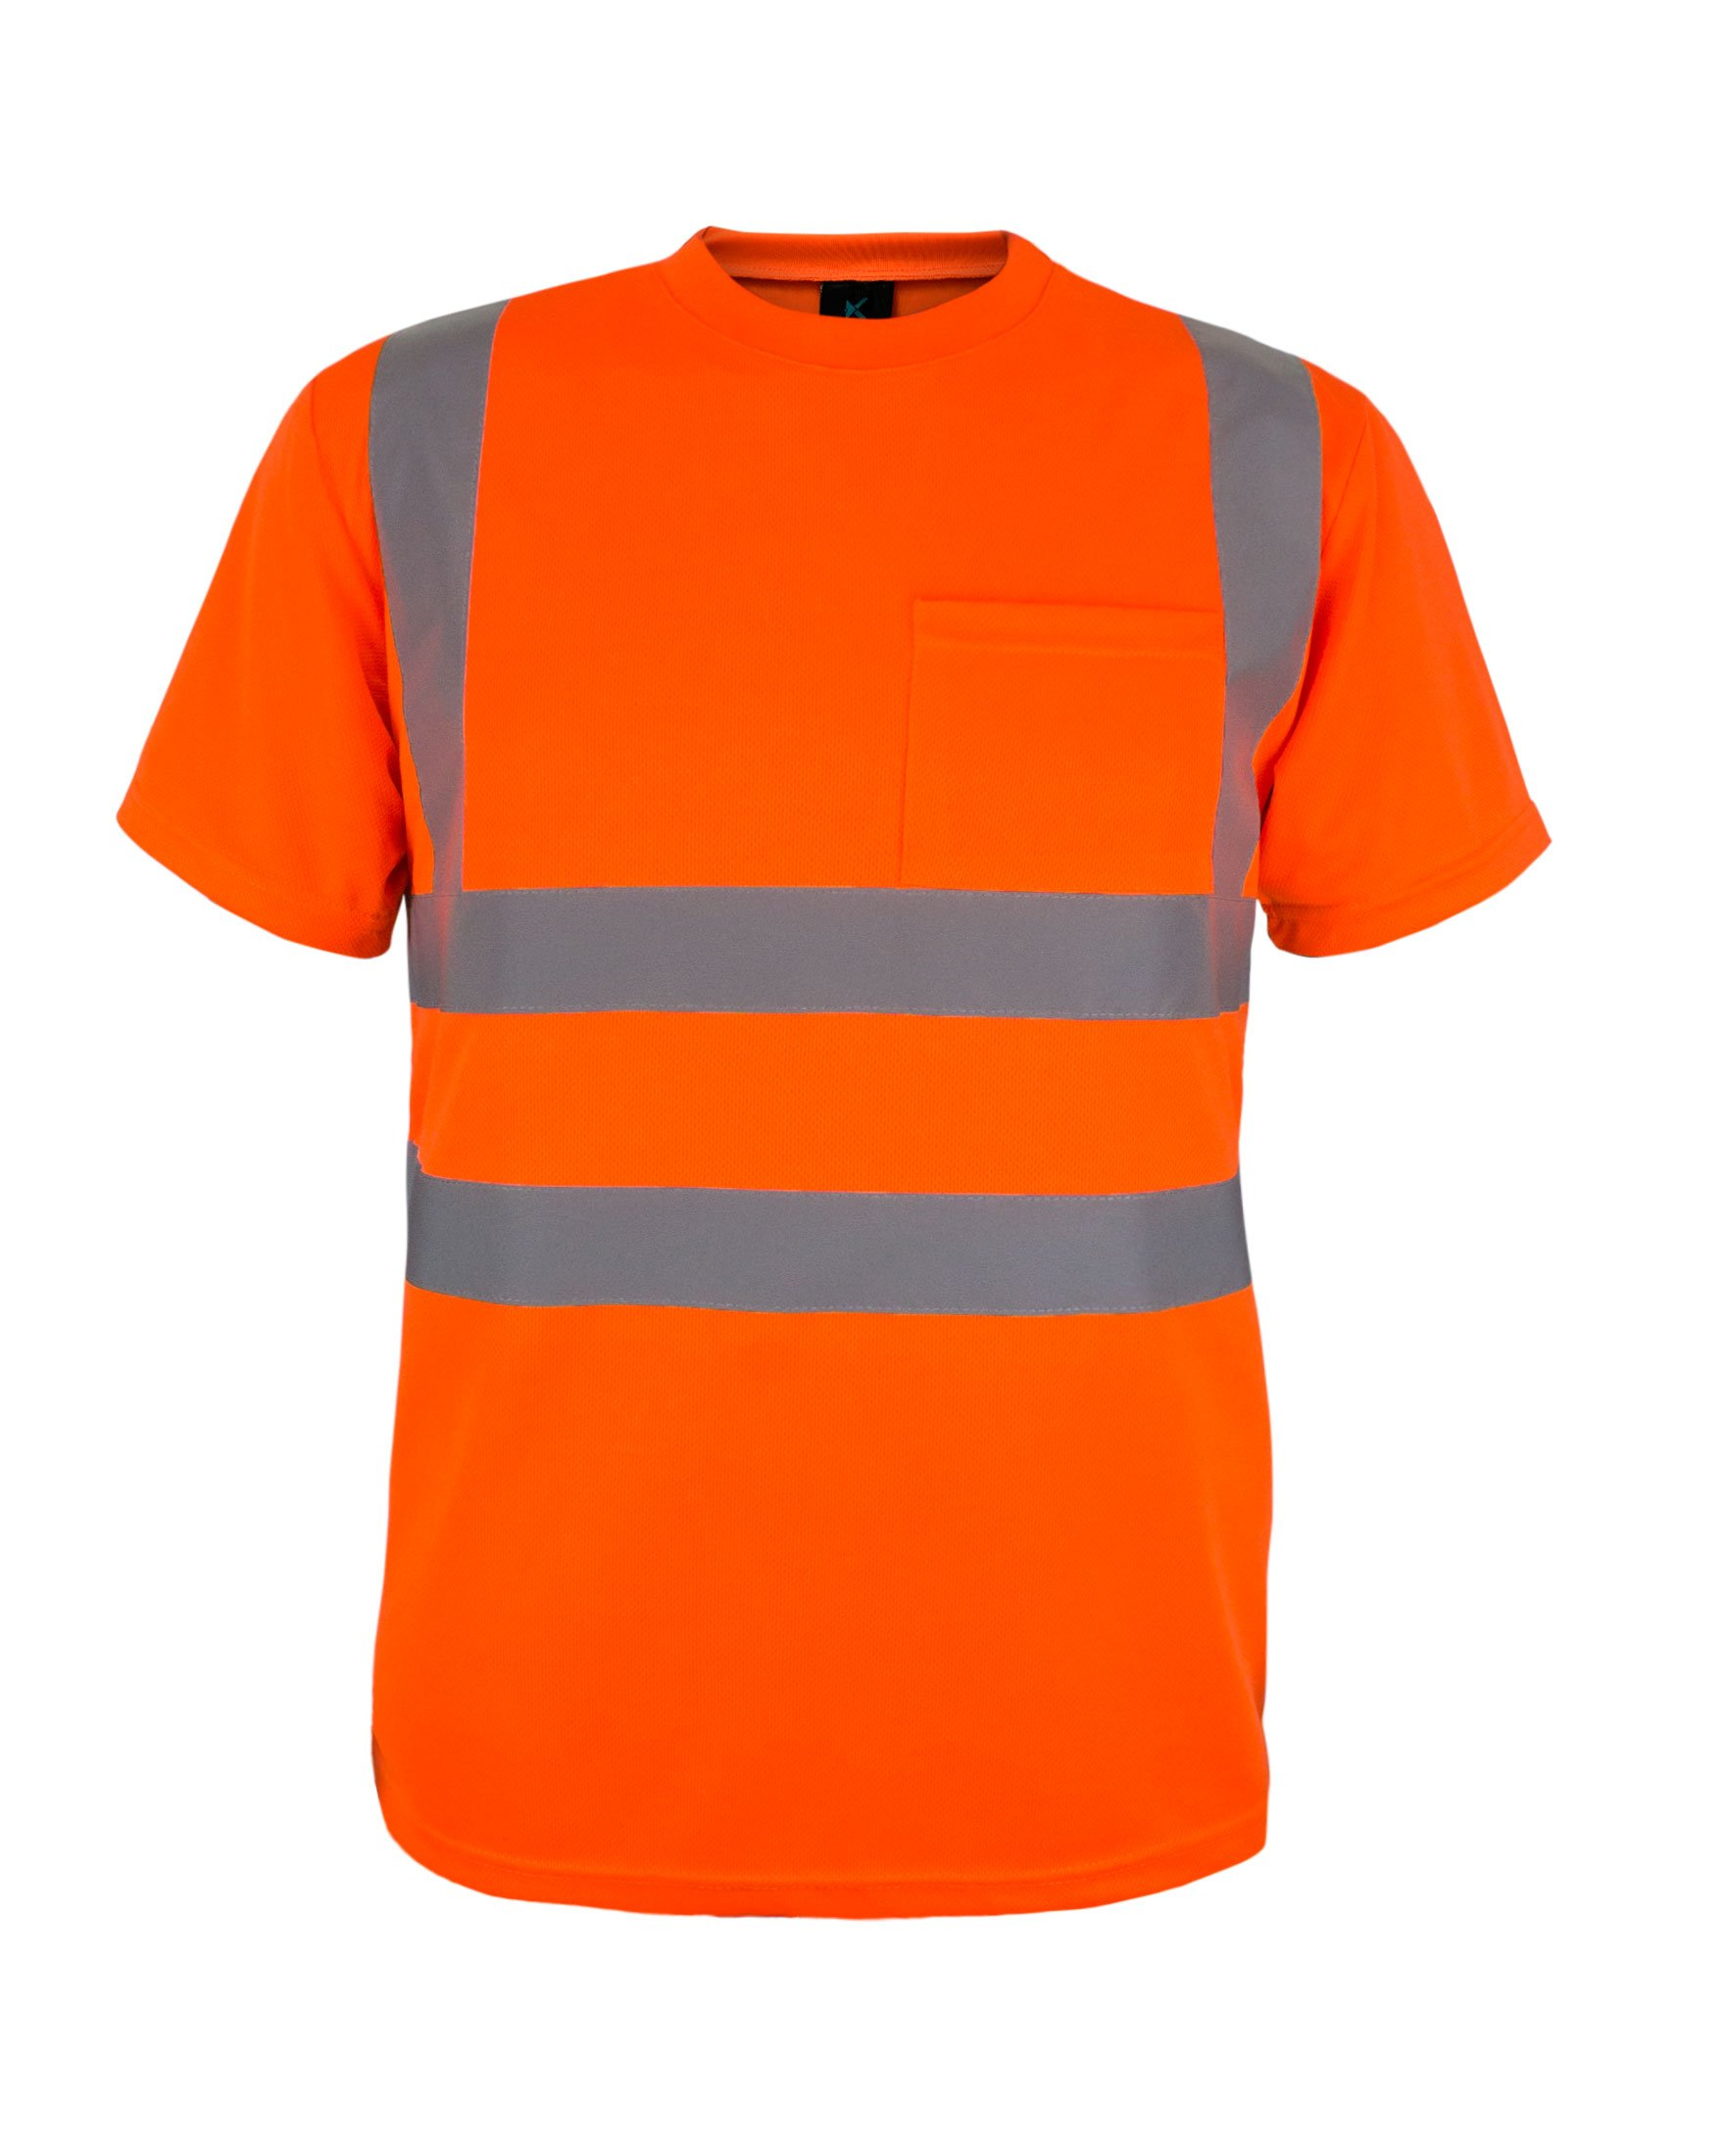 ANSI Class 2 Compliant Kolossus Basic High Visibility Vest with Frontal Pocket and Zipper